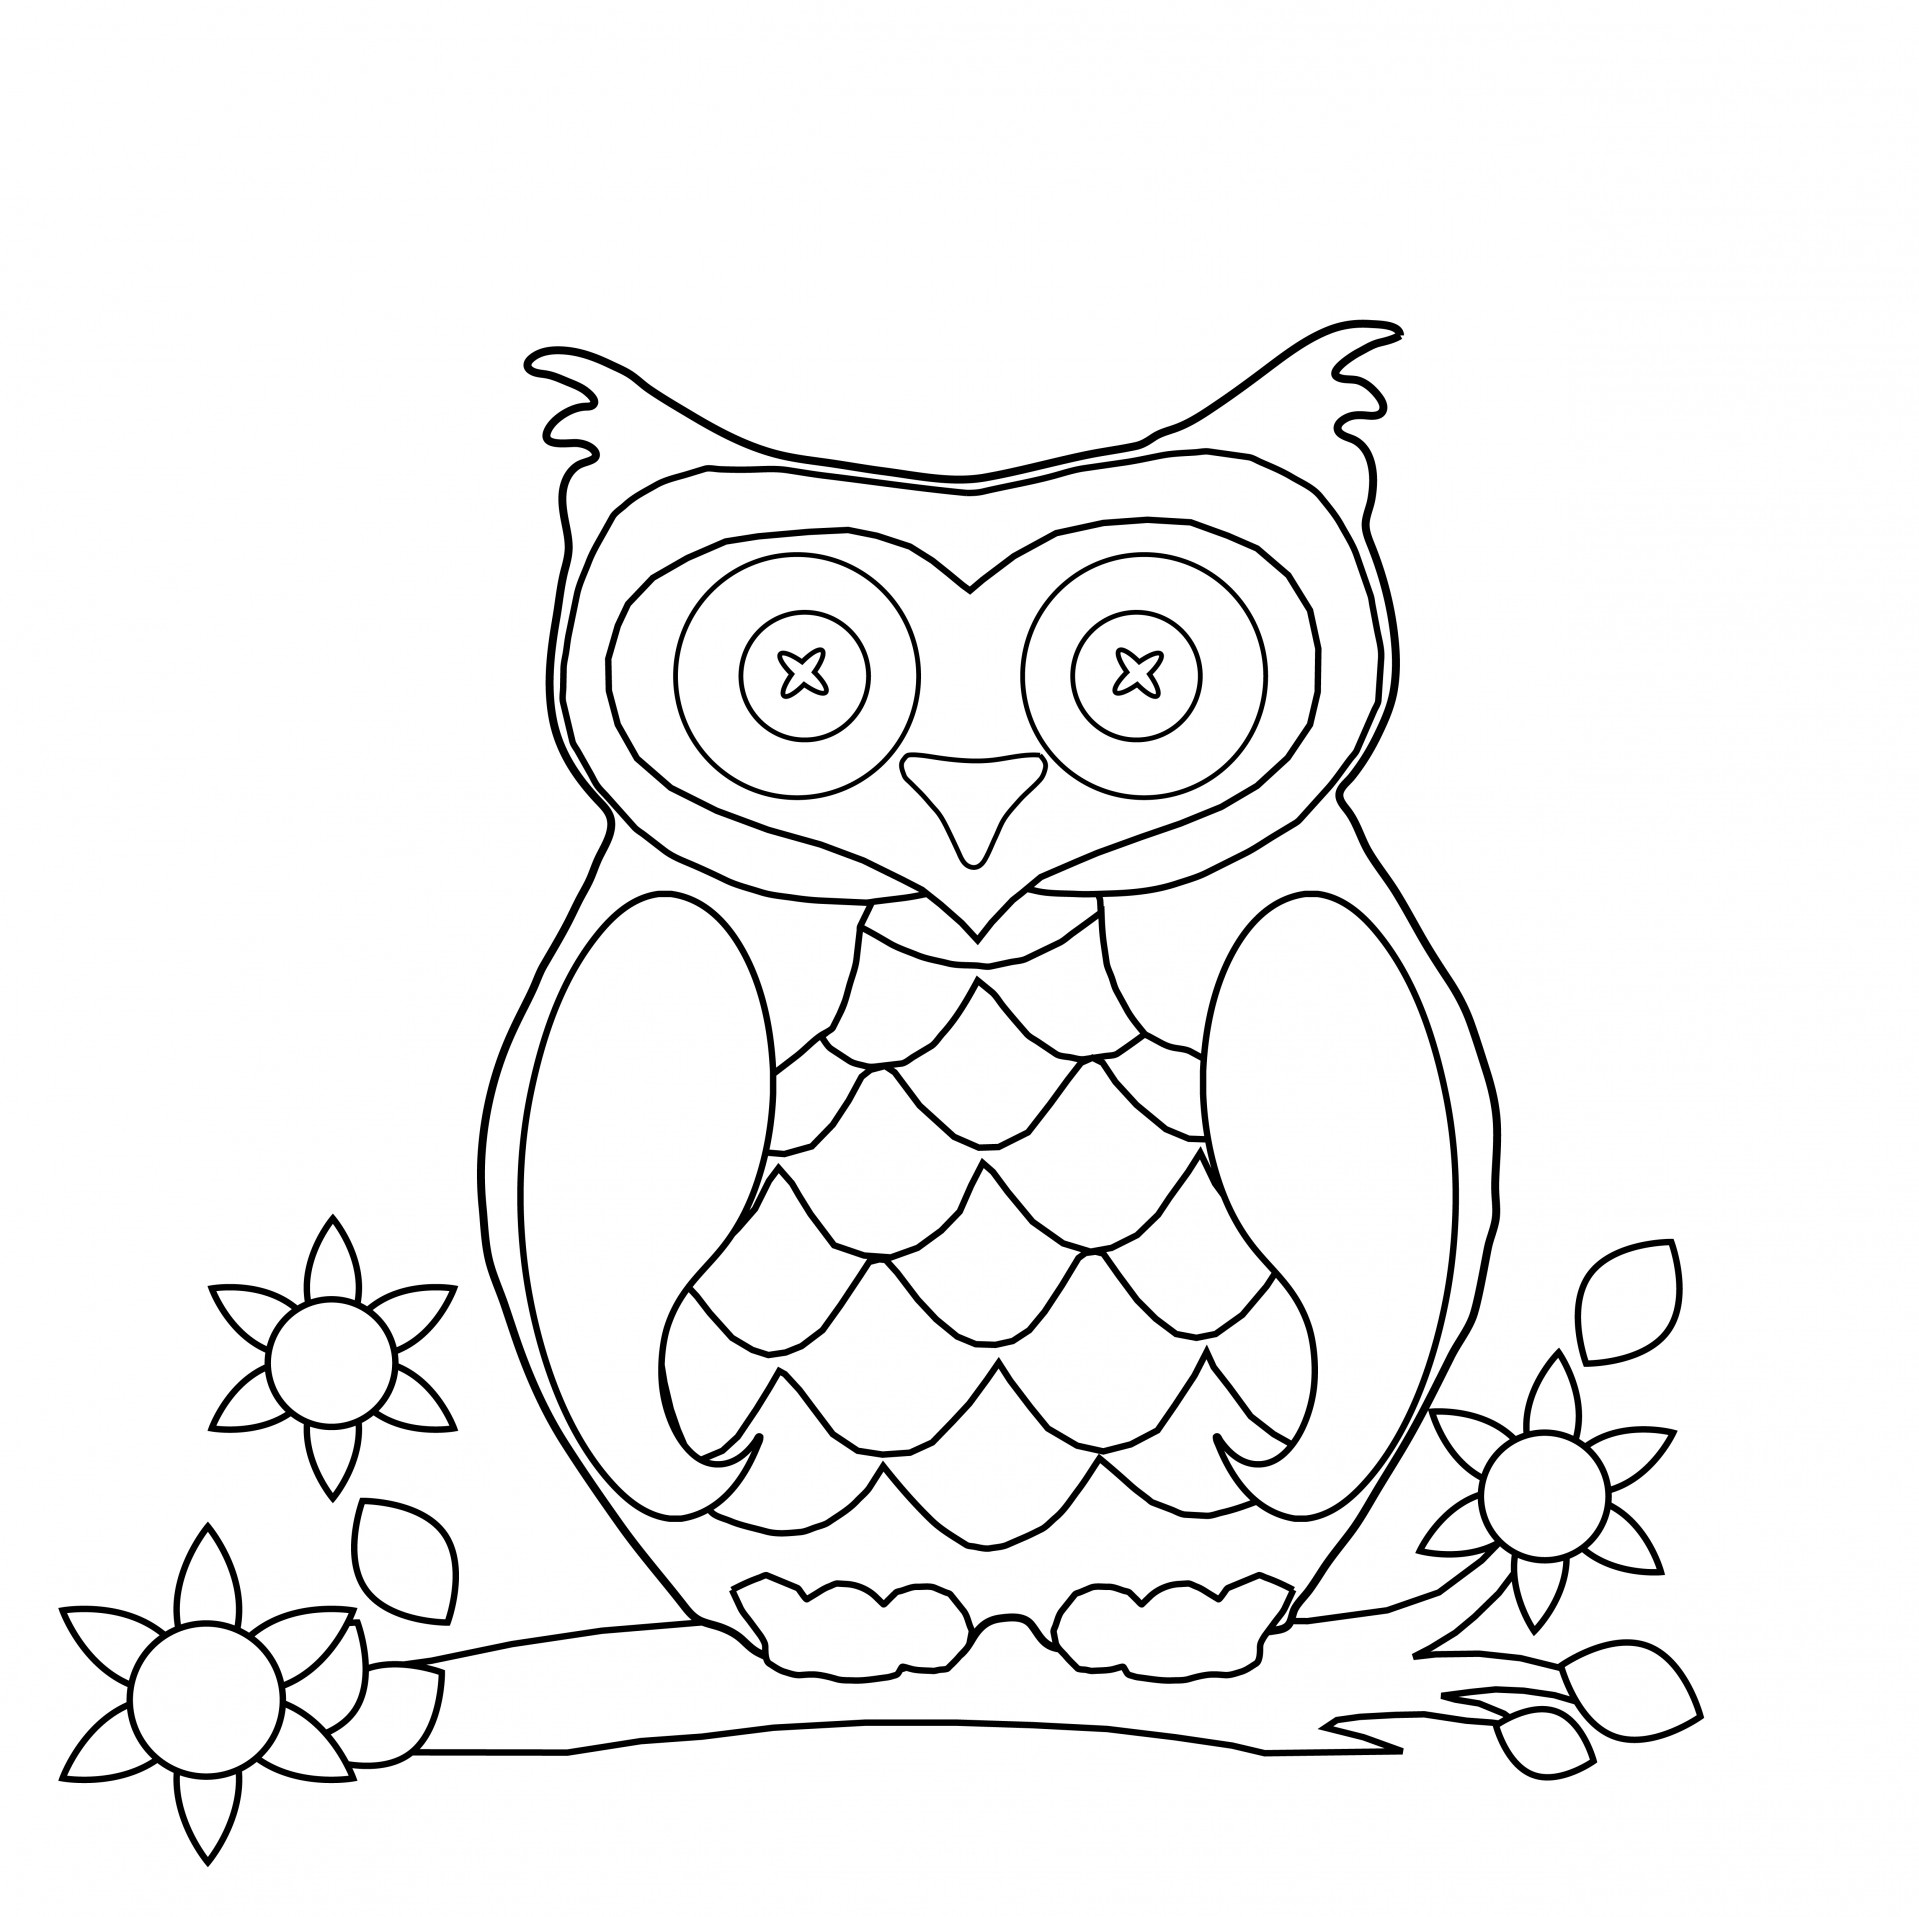 coloring templates for kids 9 free coloring pages for kids of all ages chicago parent for coloring templates kids